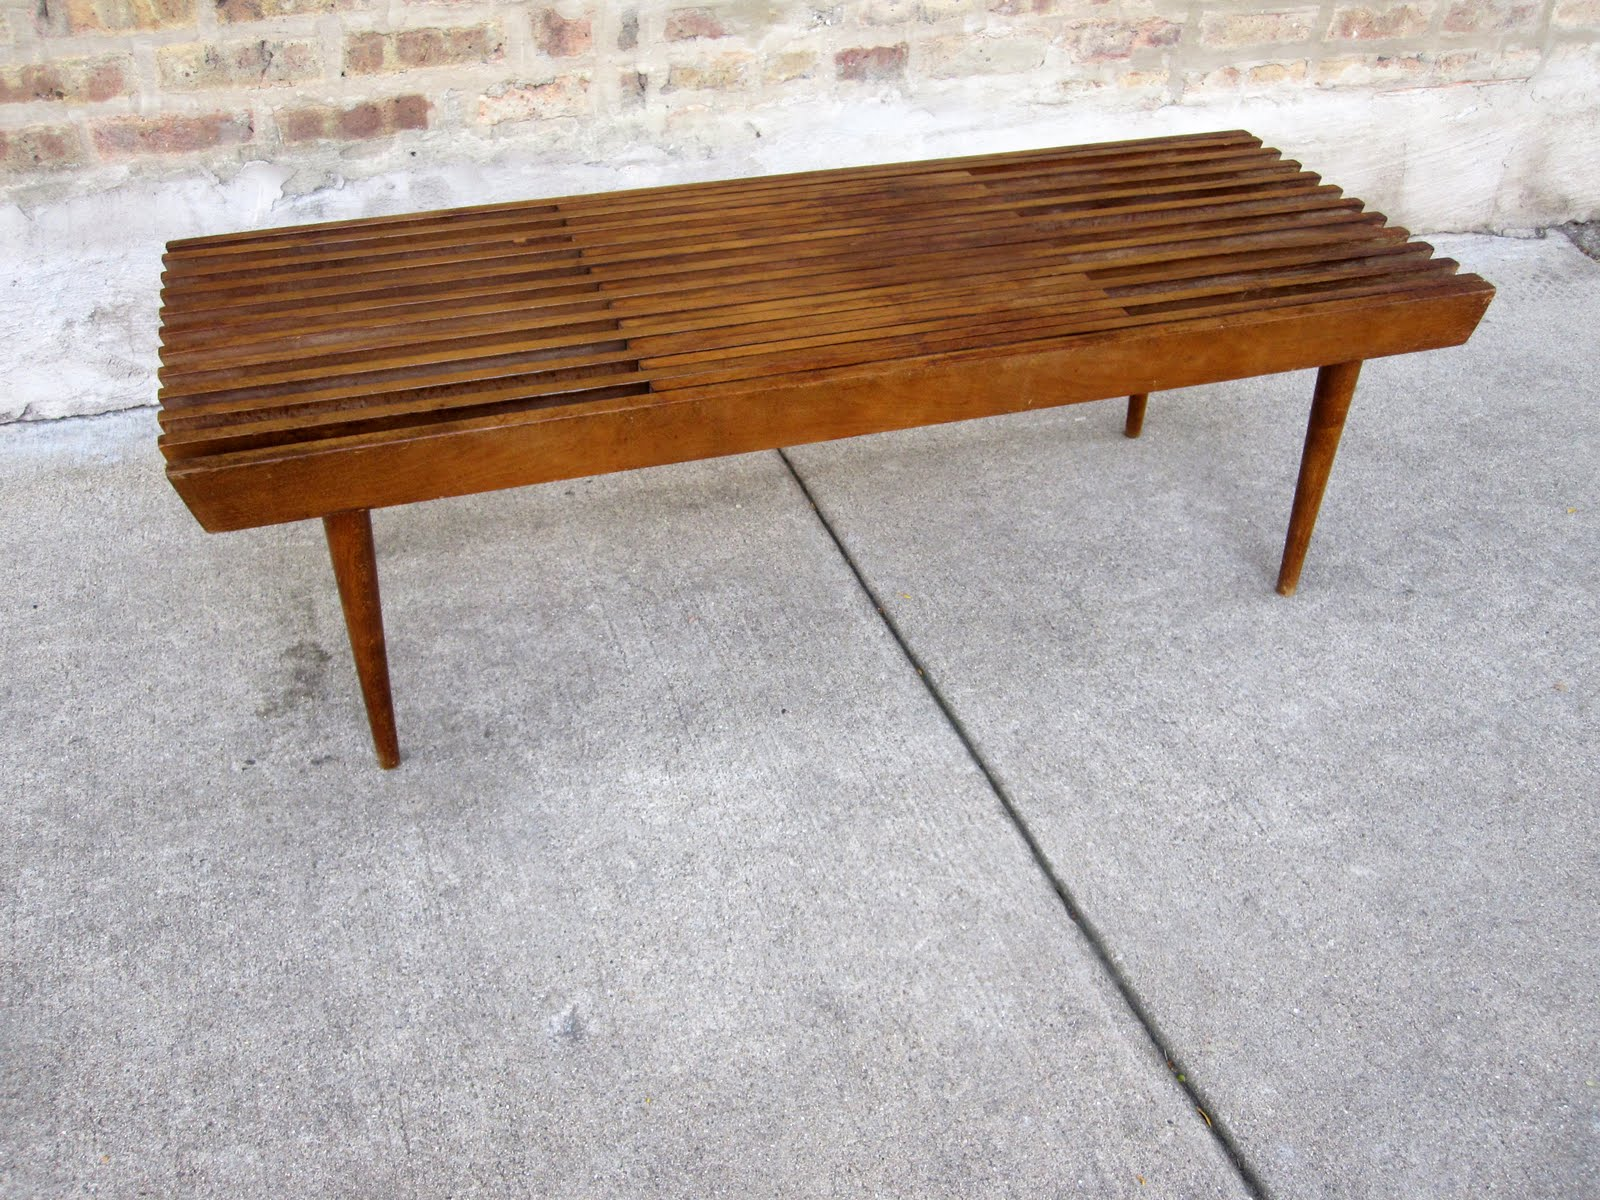 circa midcentury danish modern walnut slat bench coffee table